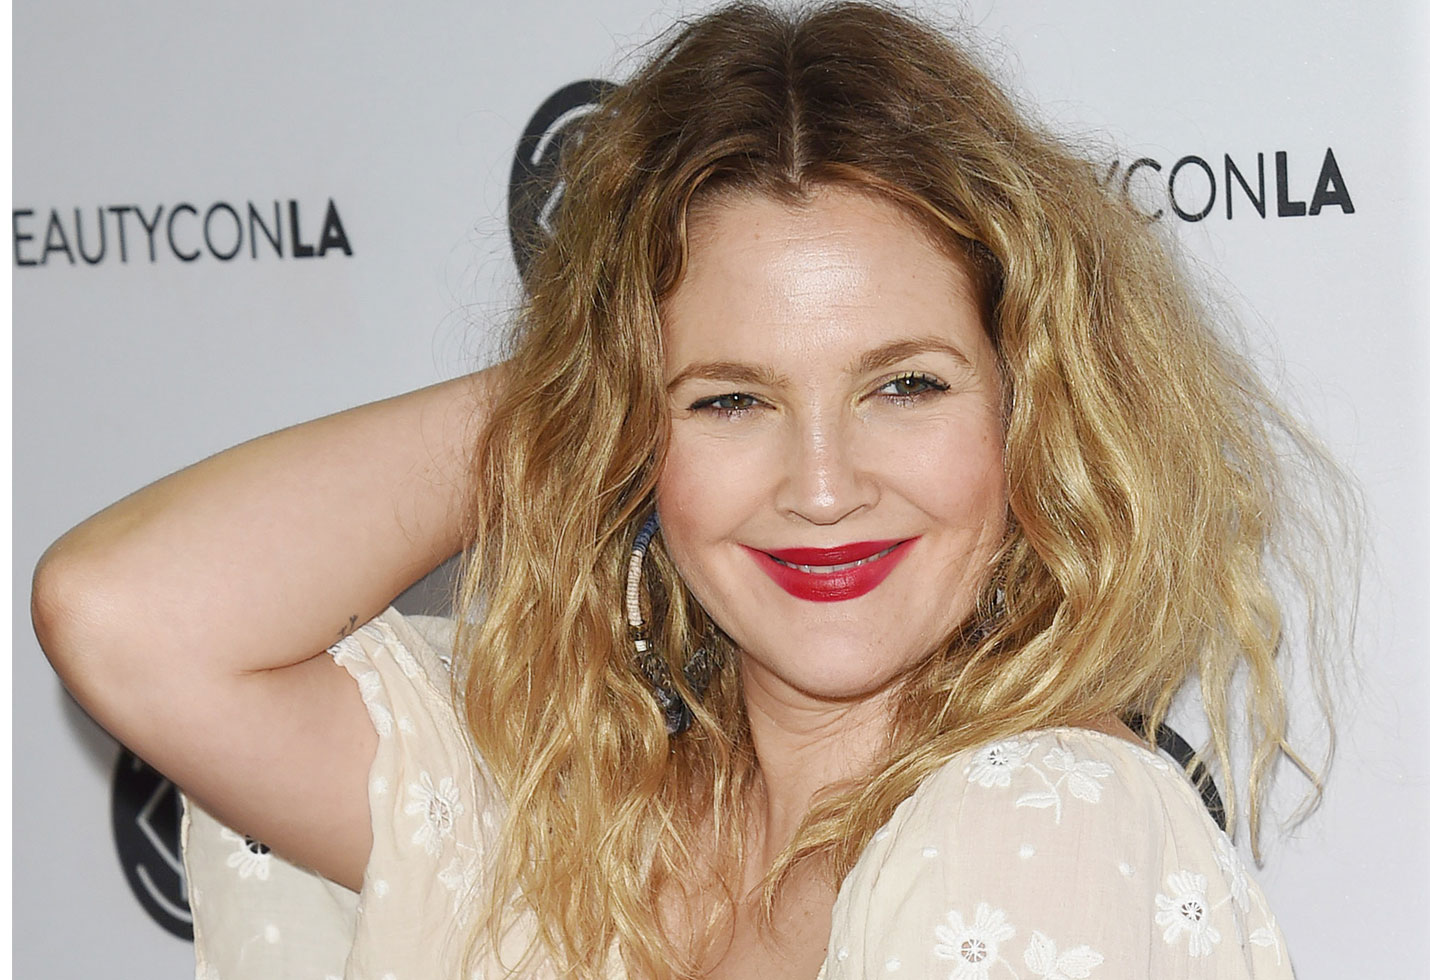 Drew Barrymore is done using dating apps to find love